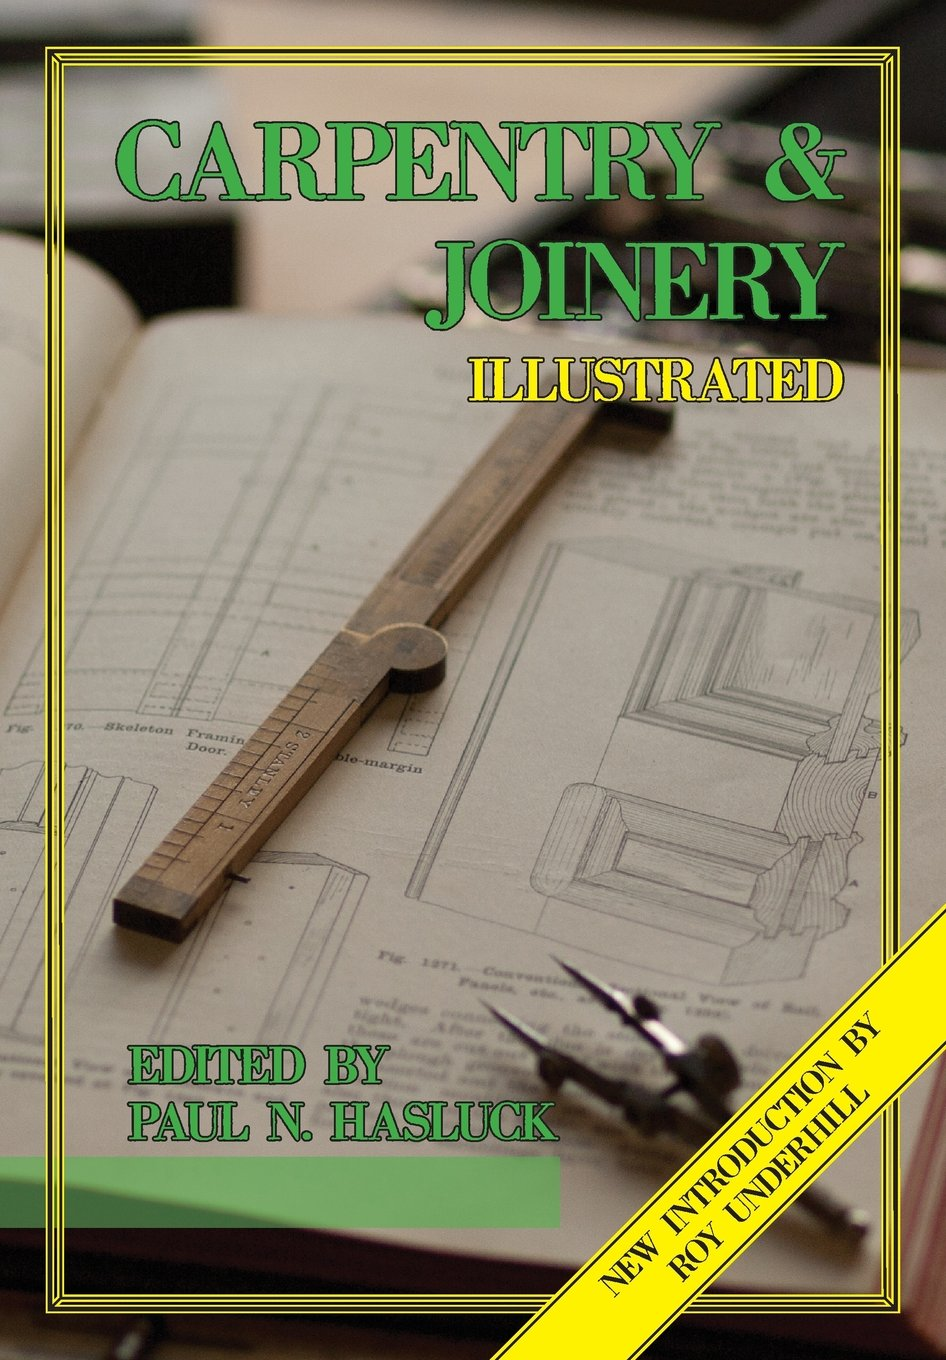 Carpentry and Joinery Illustrated: Amazon.co.uk: Paul N Hasluck, Roy  Underhill: 9780982863206: Books